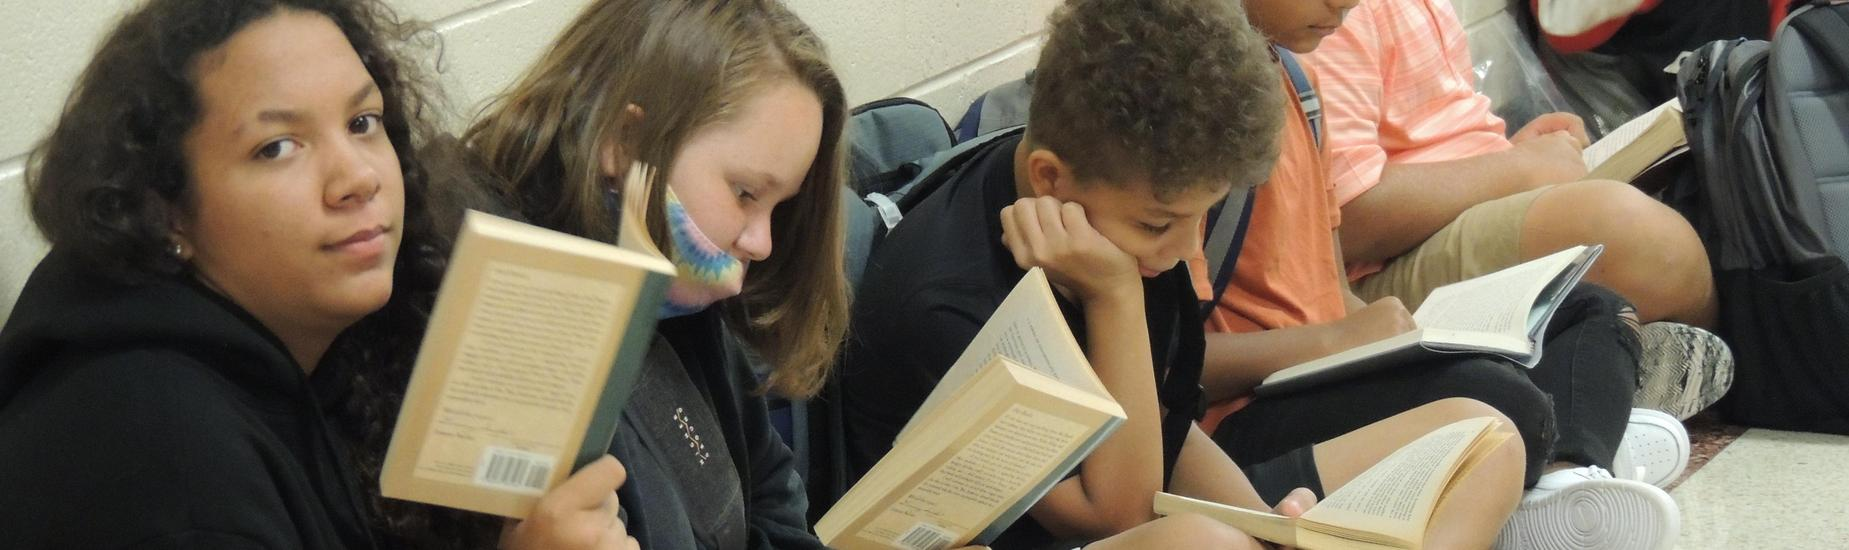 Students reading in the hallway